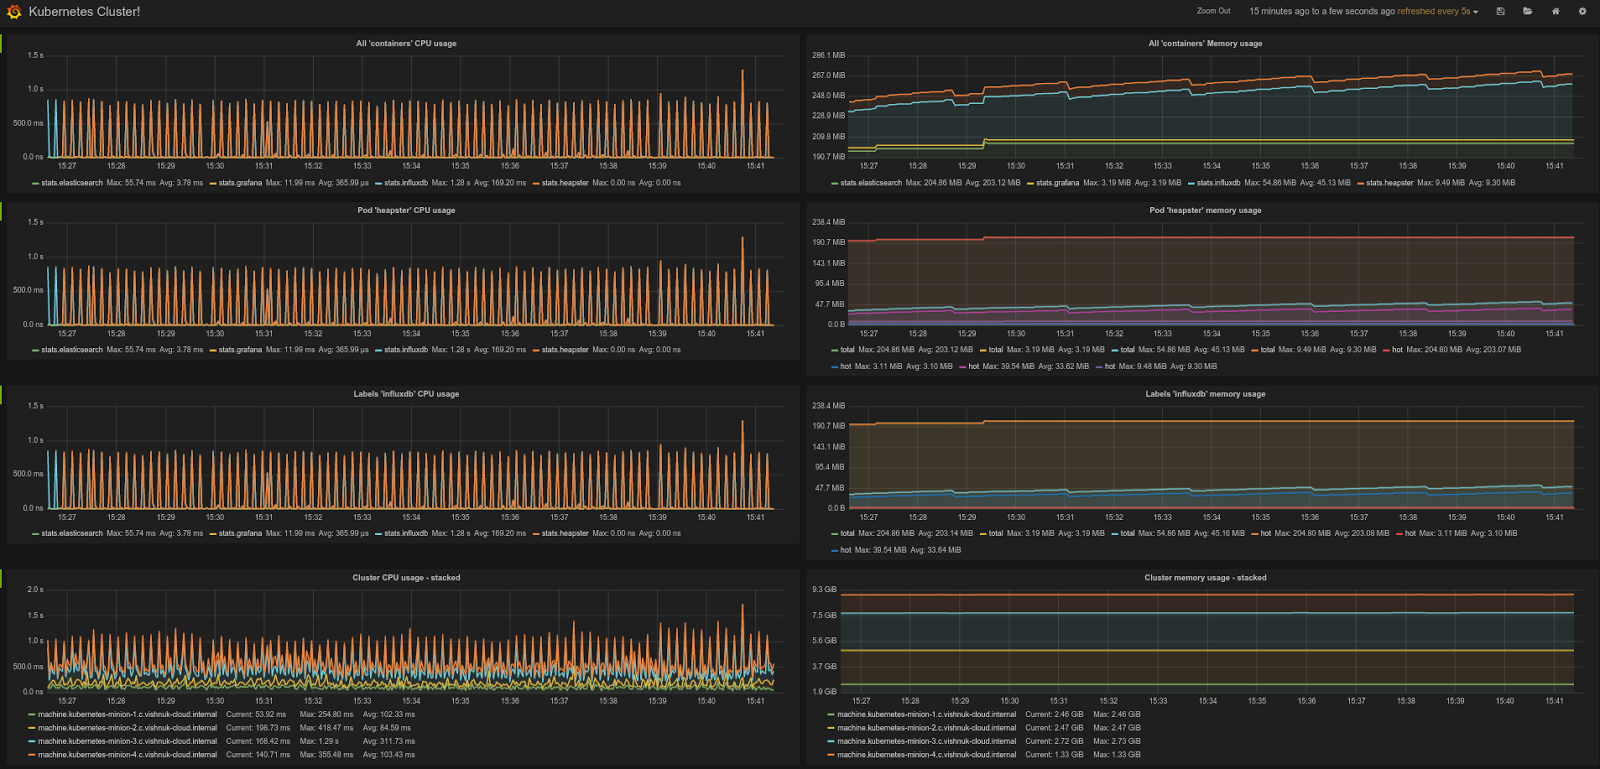 snapshot of the default Kubernetes Grafana dashboard